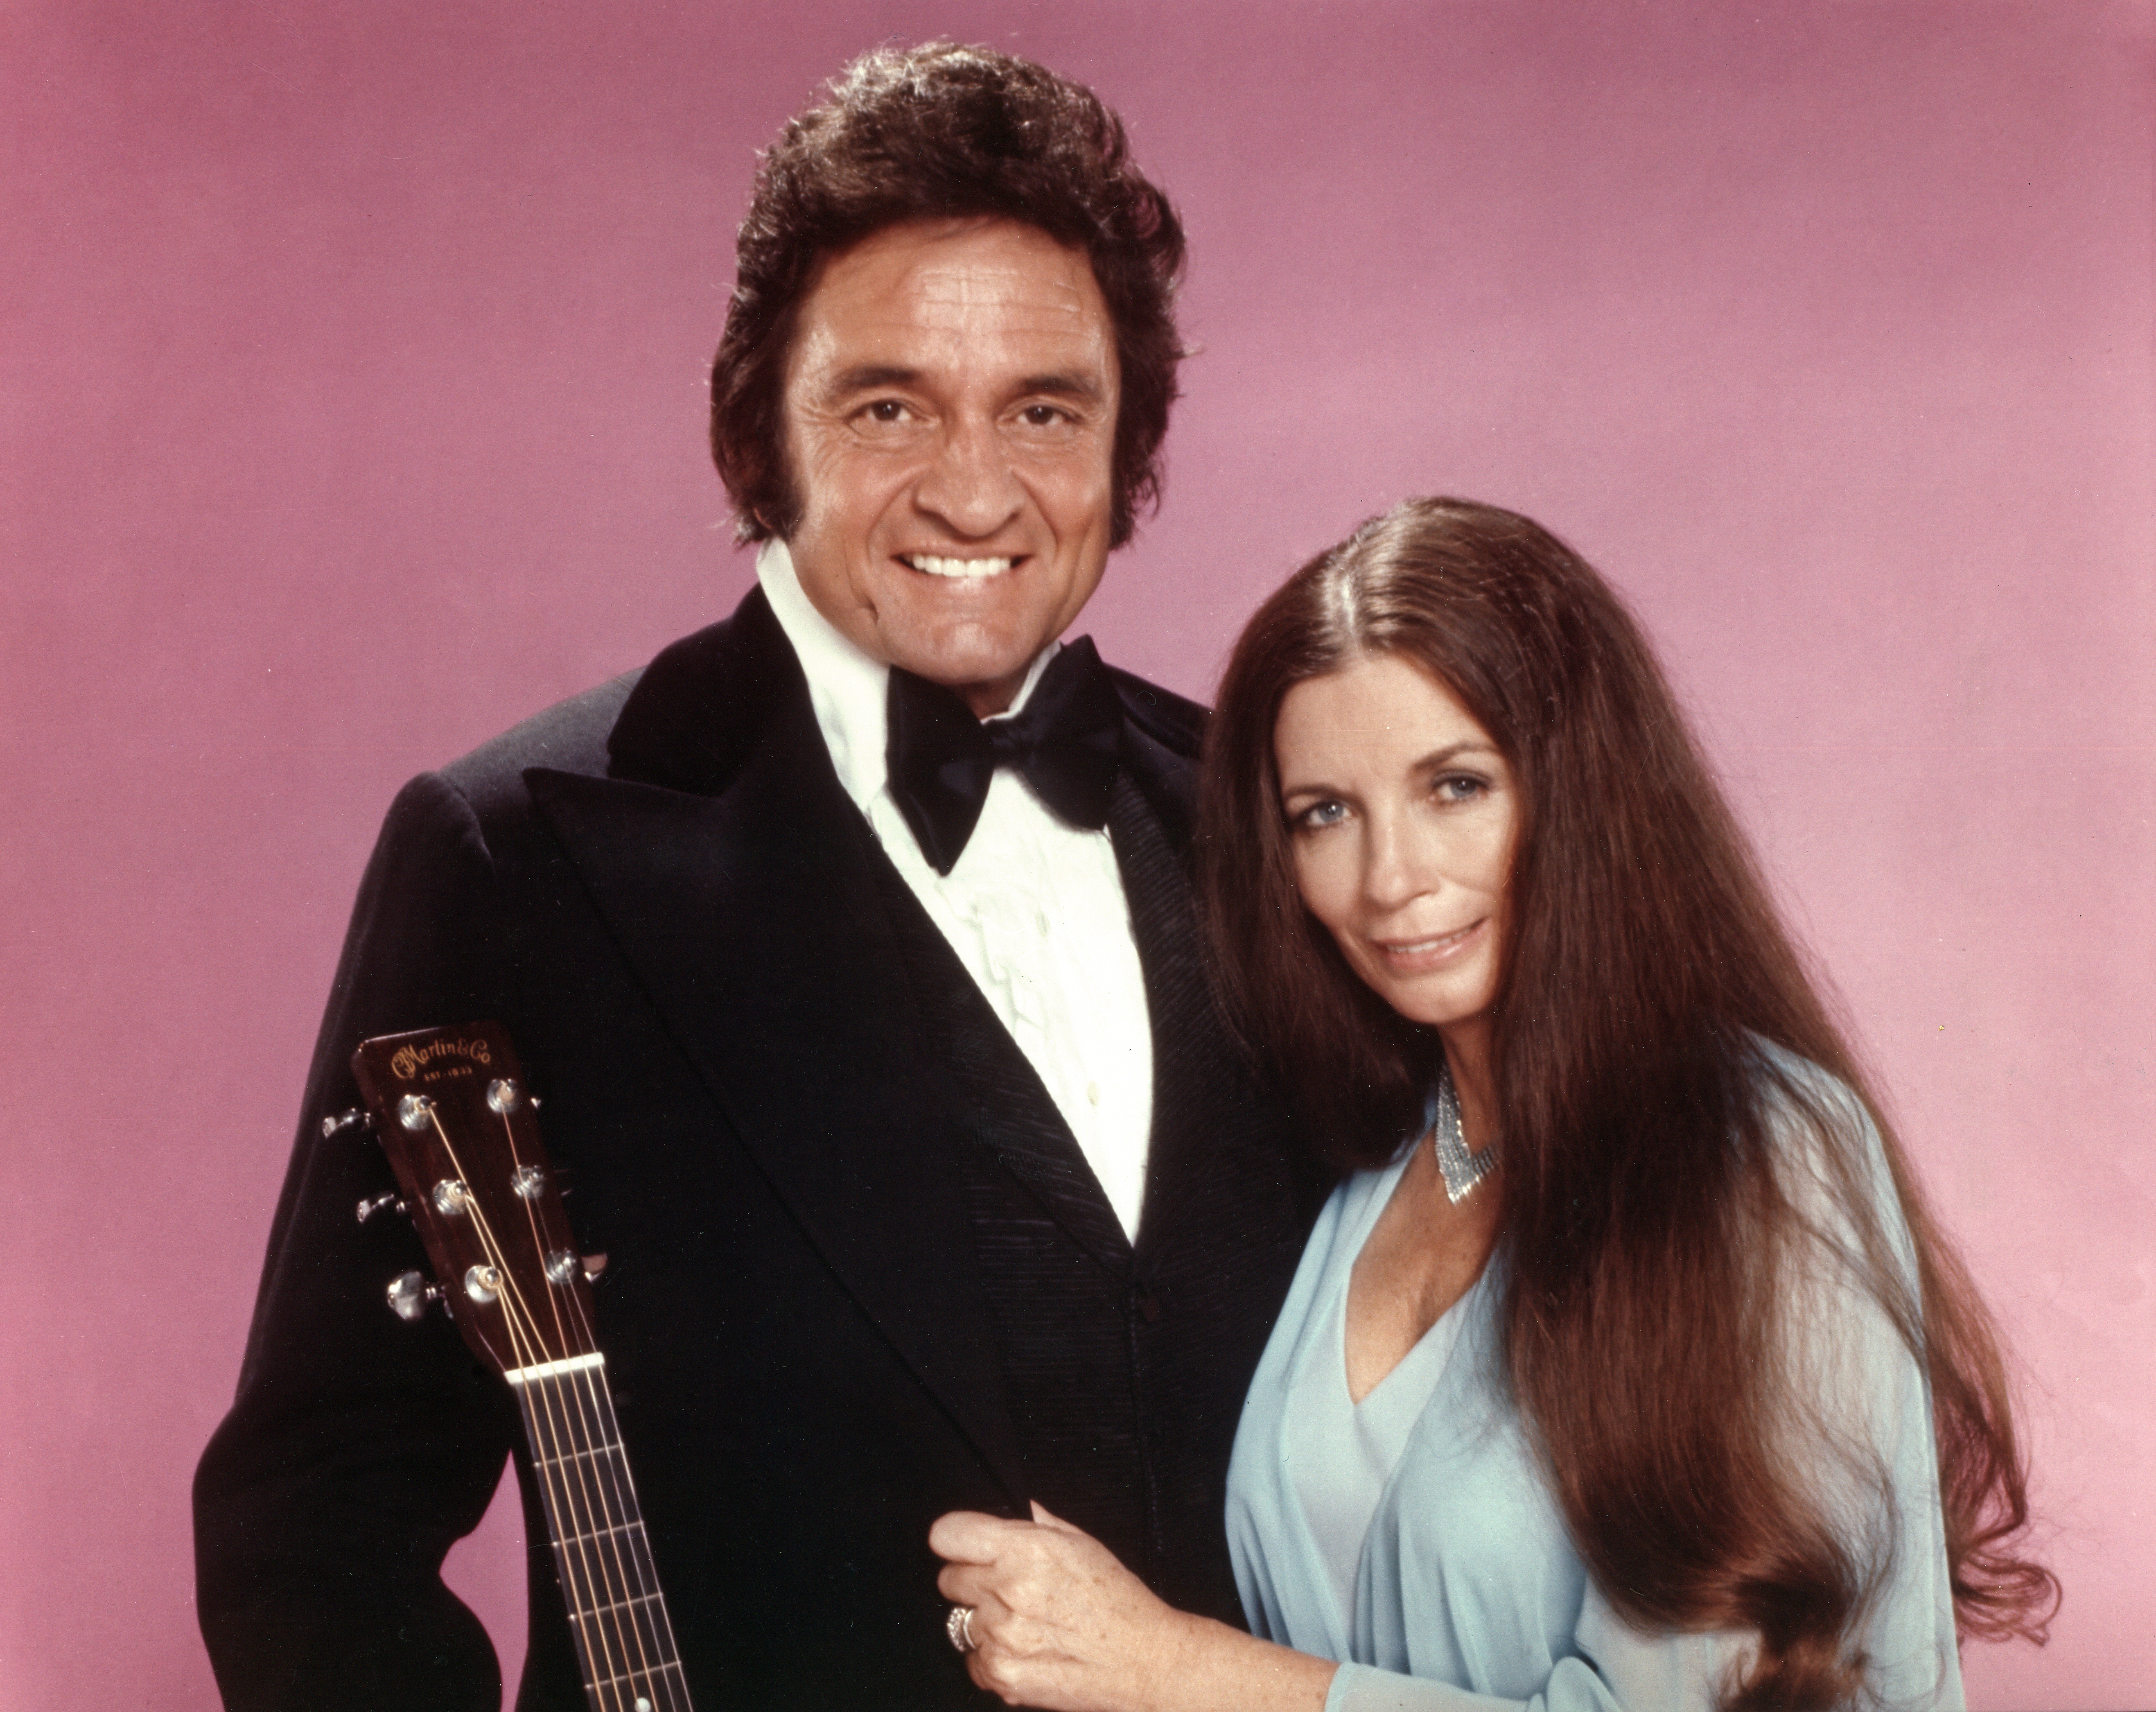 Johnny Cashs Love Letters to June Carter Cash Will Warm